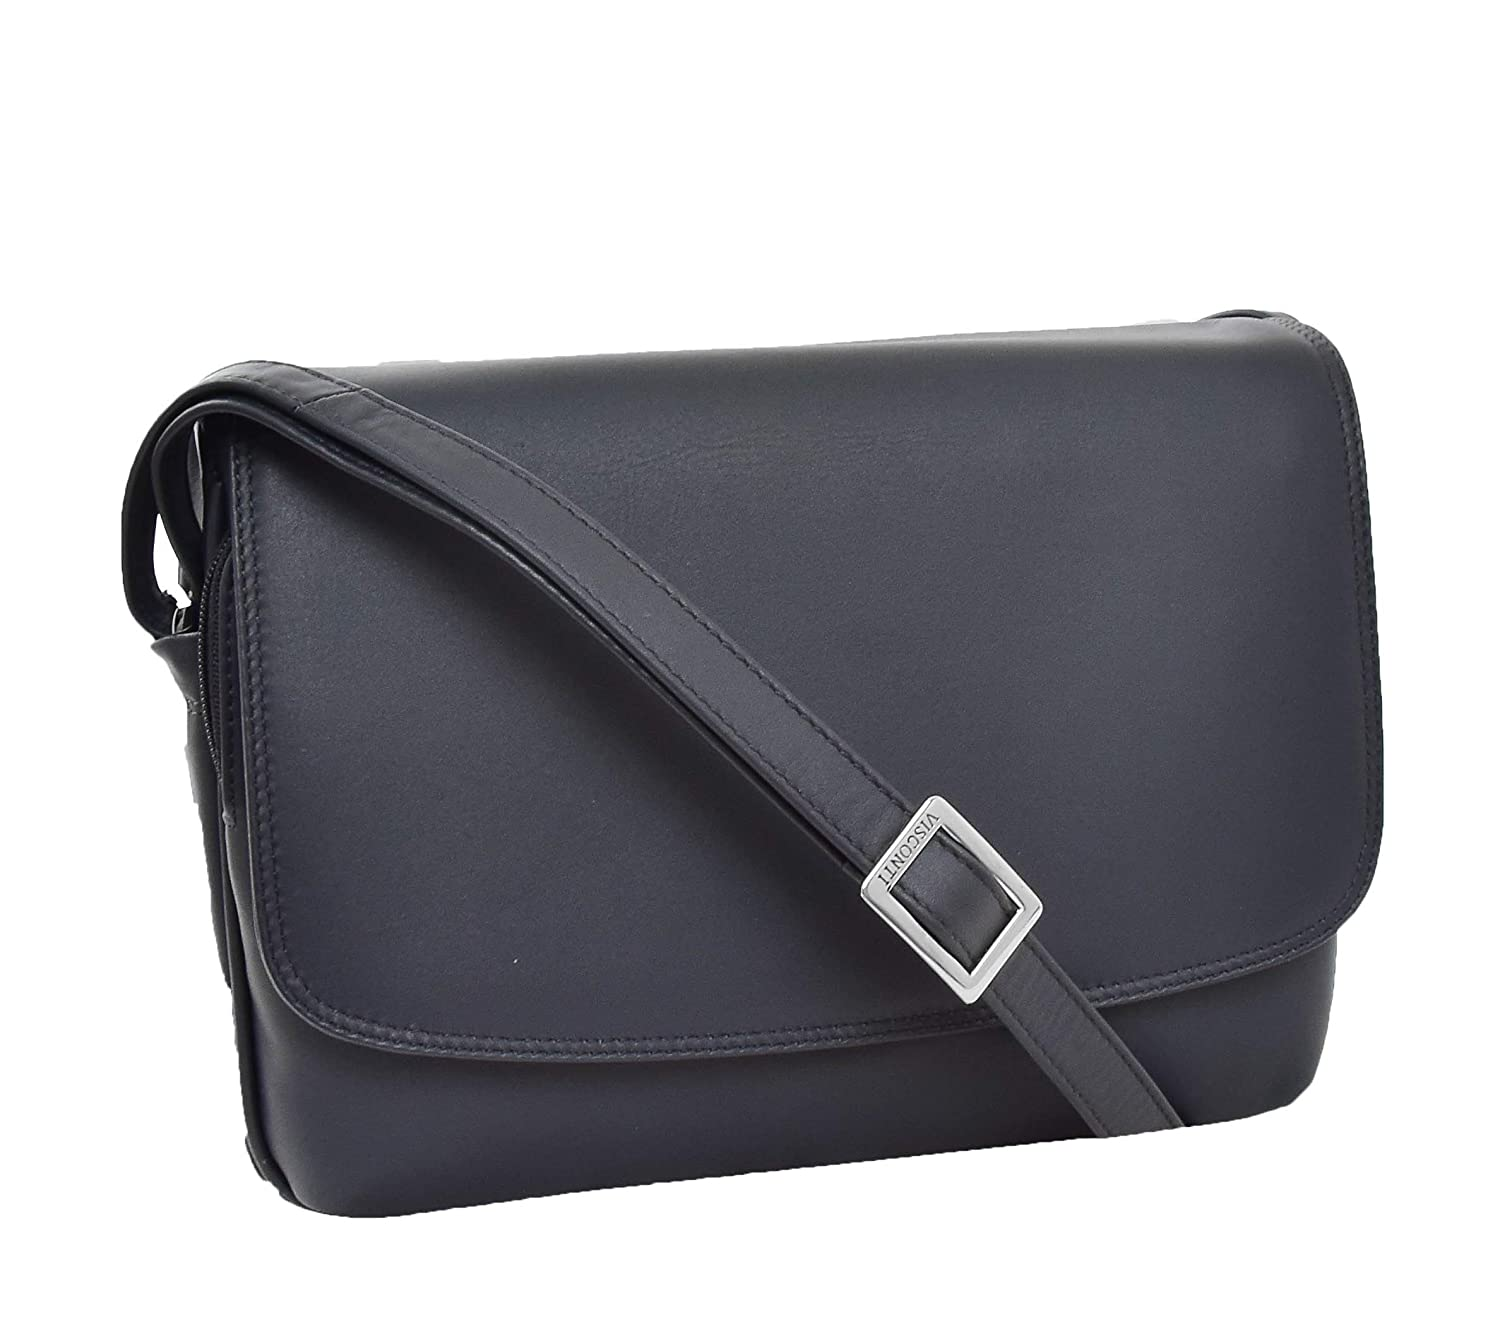 - A1 FASHION GOODS Ladies Navy Leather Shoulder Bag Everyday Classic Casual Flap Over Handbag A190